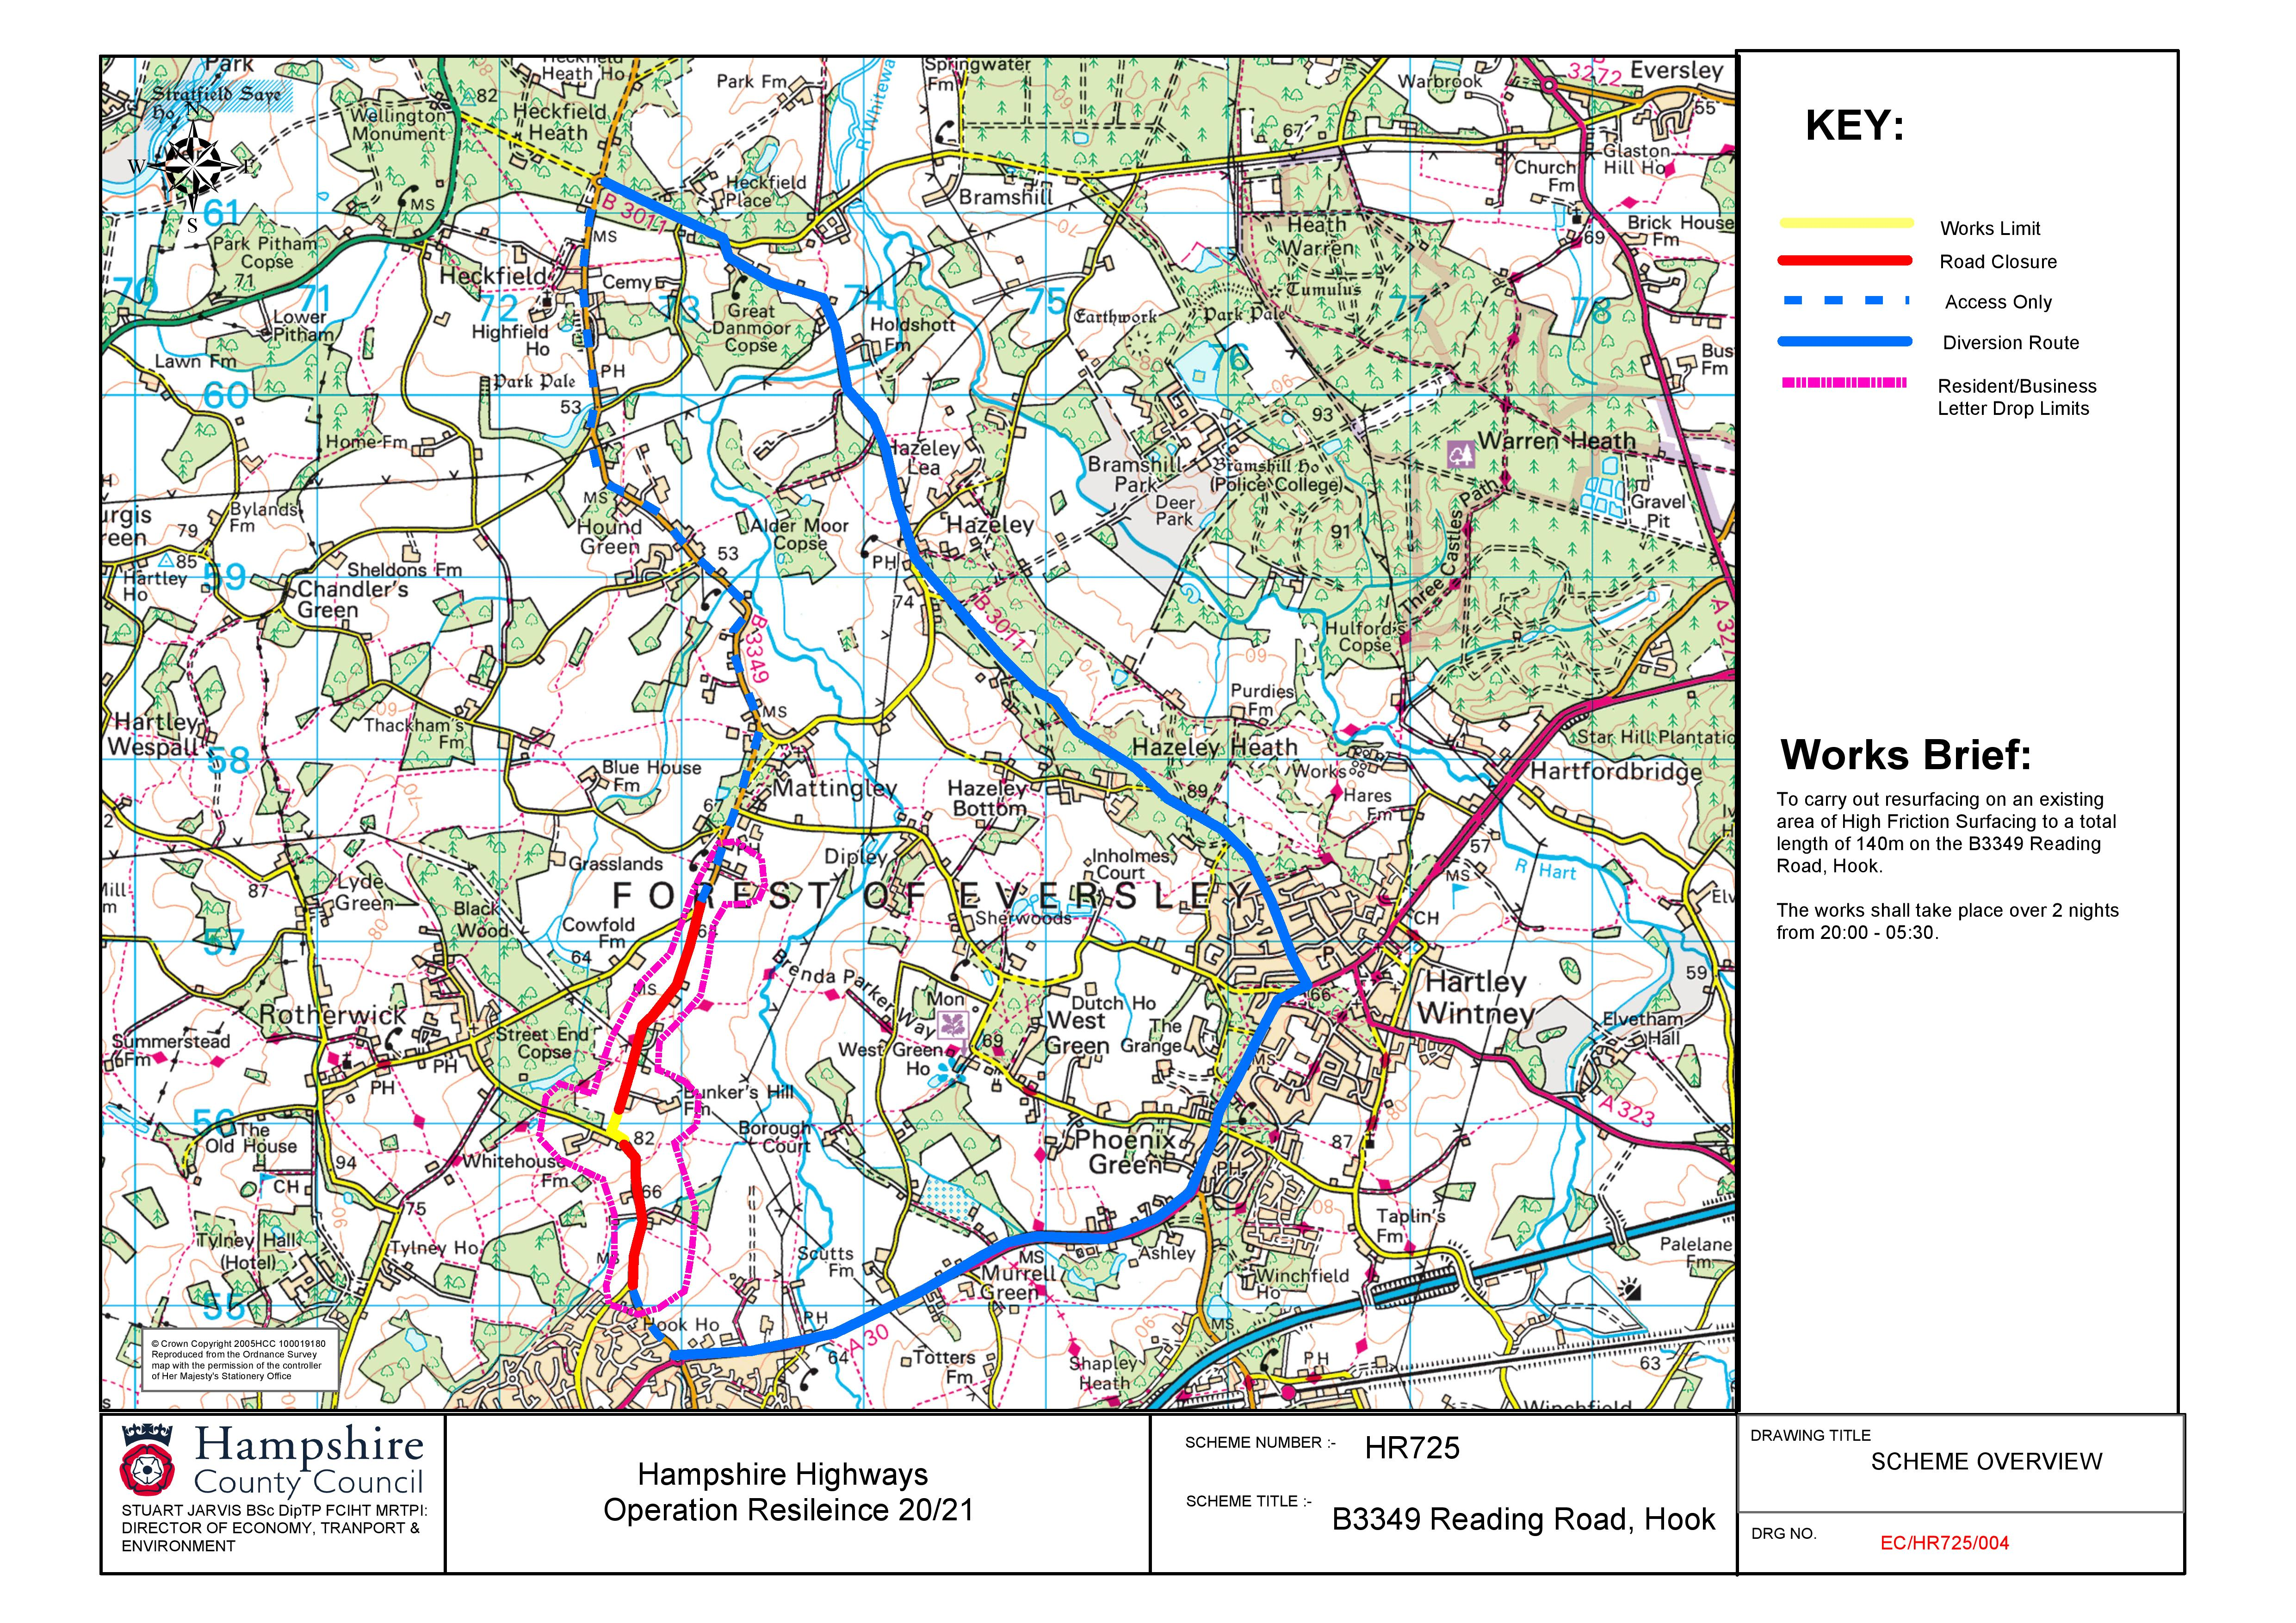 Map of Roadworks on B3349 Reading Road, Heckfield (HR7725)